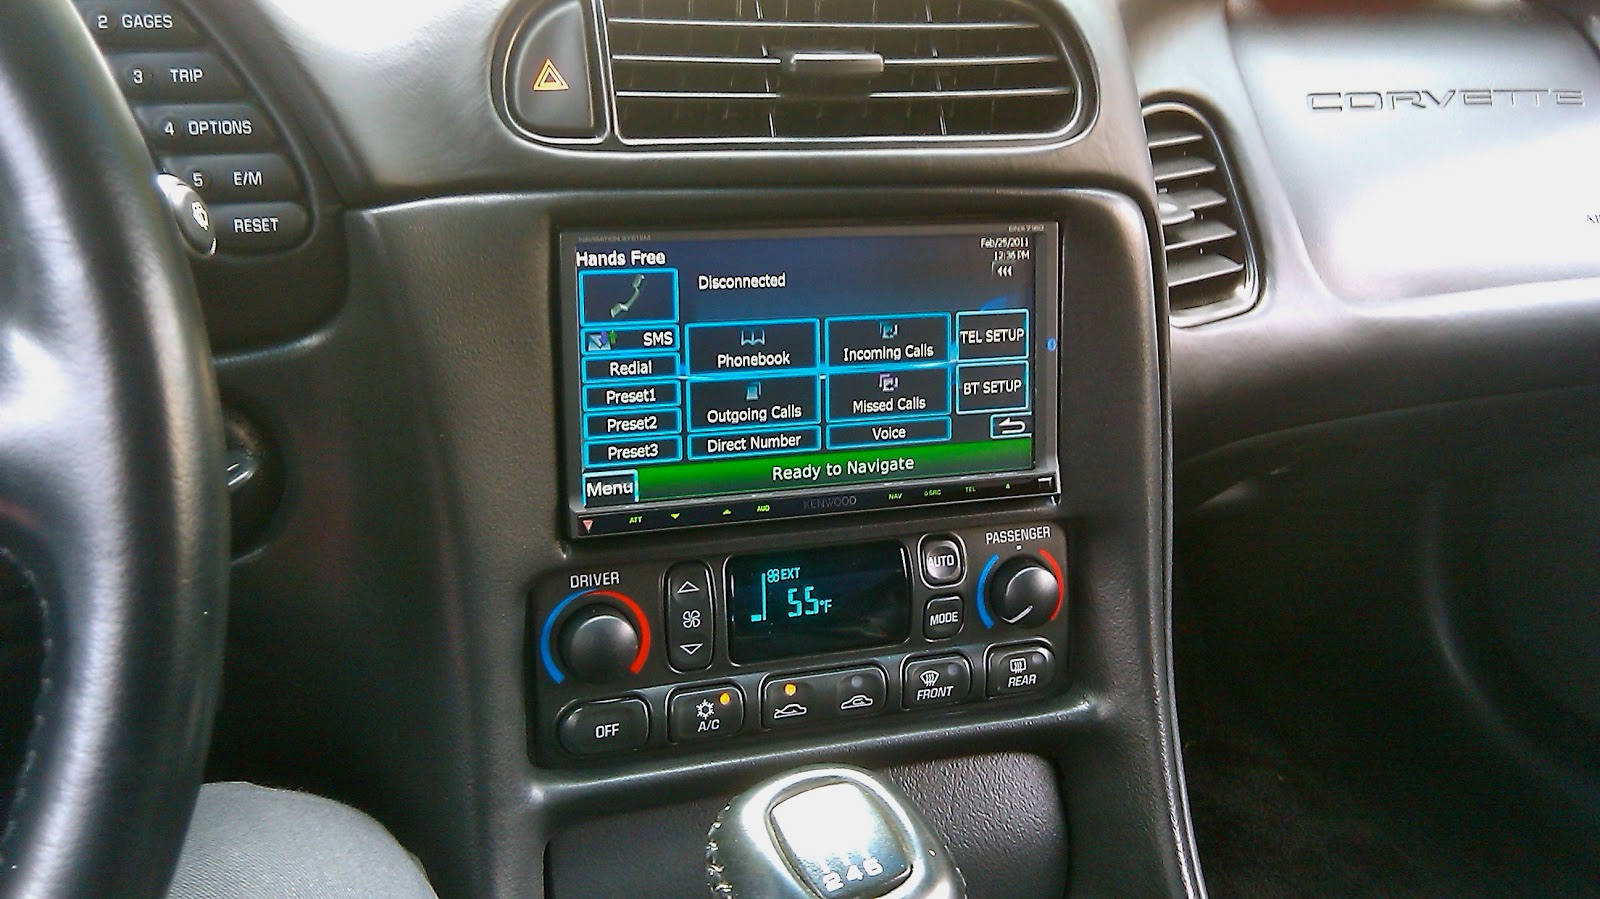 Outstanding 97 Chevy Radio Wiring Diagram Image - Electrical and ...